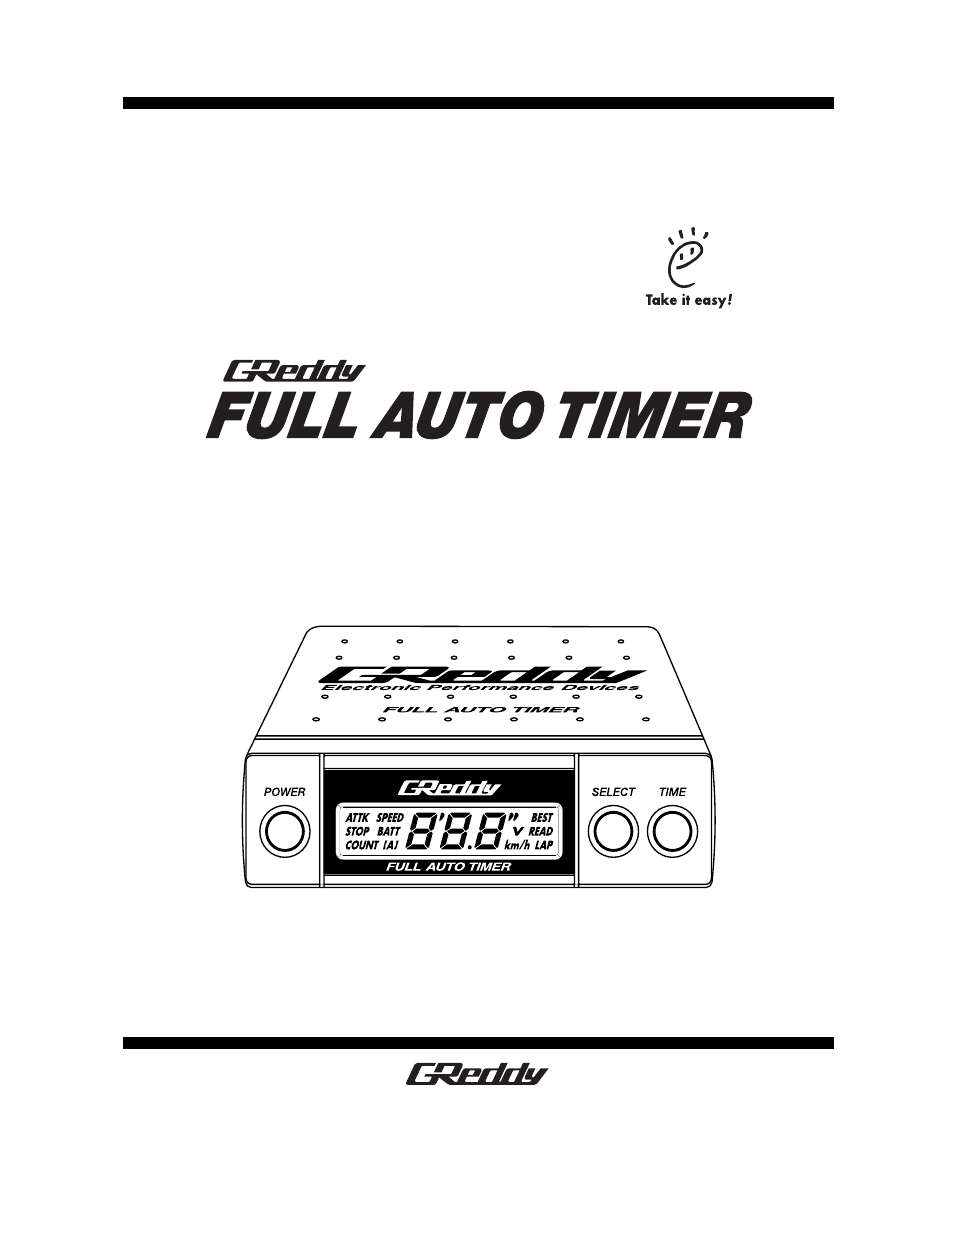 Blitz Fatt Turbo Timer Wiring Diagram Blitz Turbo Timer